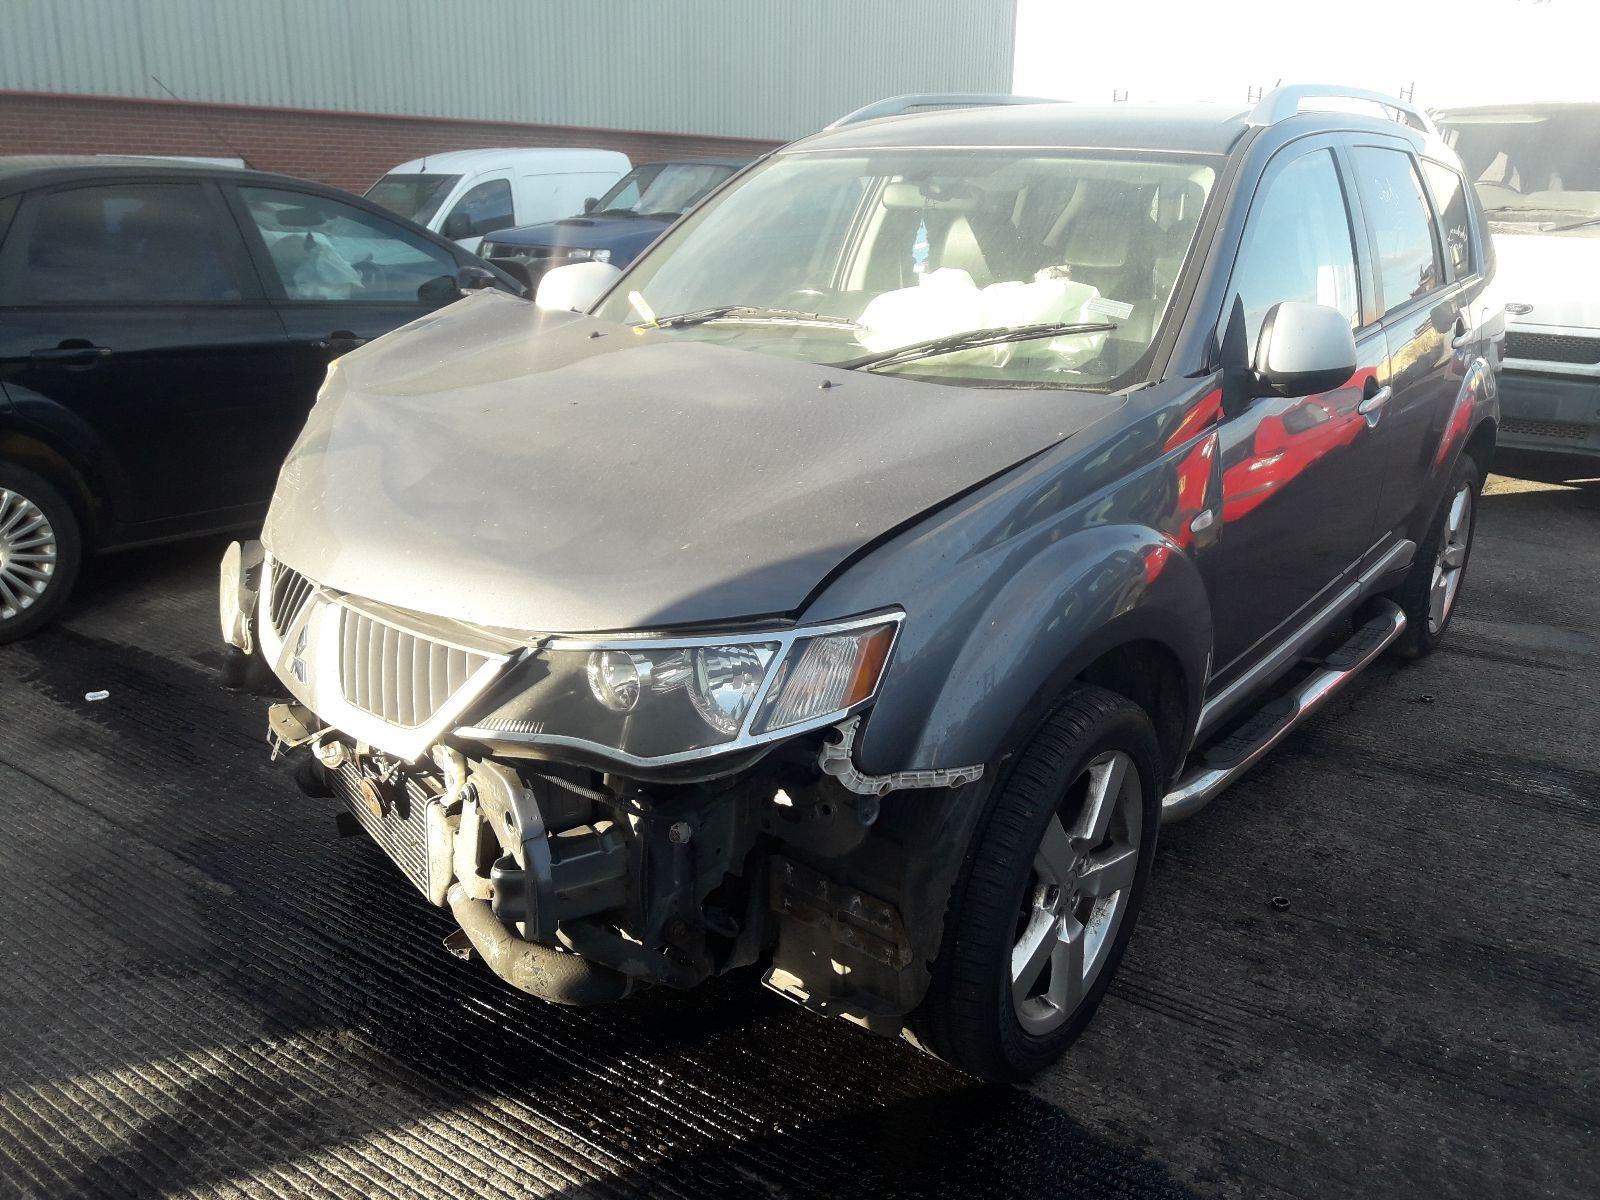 ... Mitsubishi Outlander 2007 To 2010 5 Door 4x4 ...